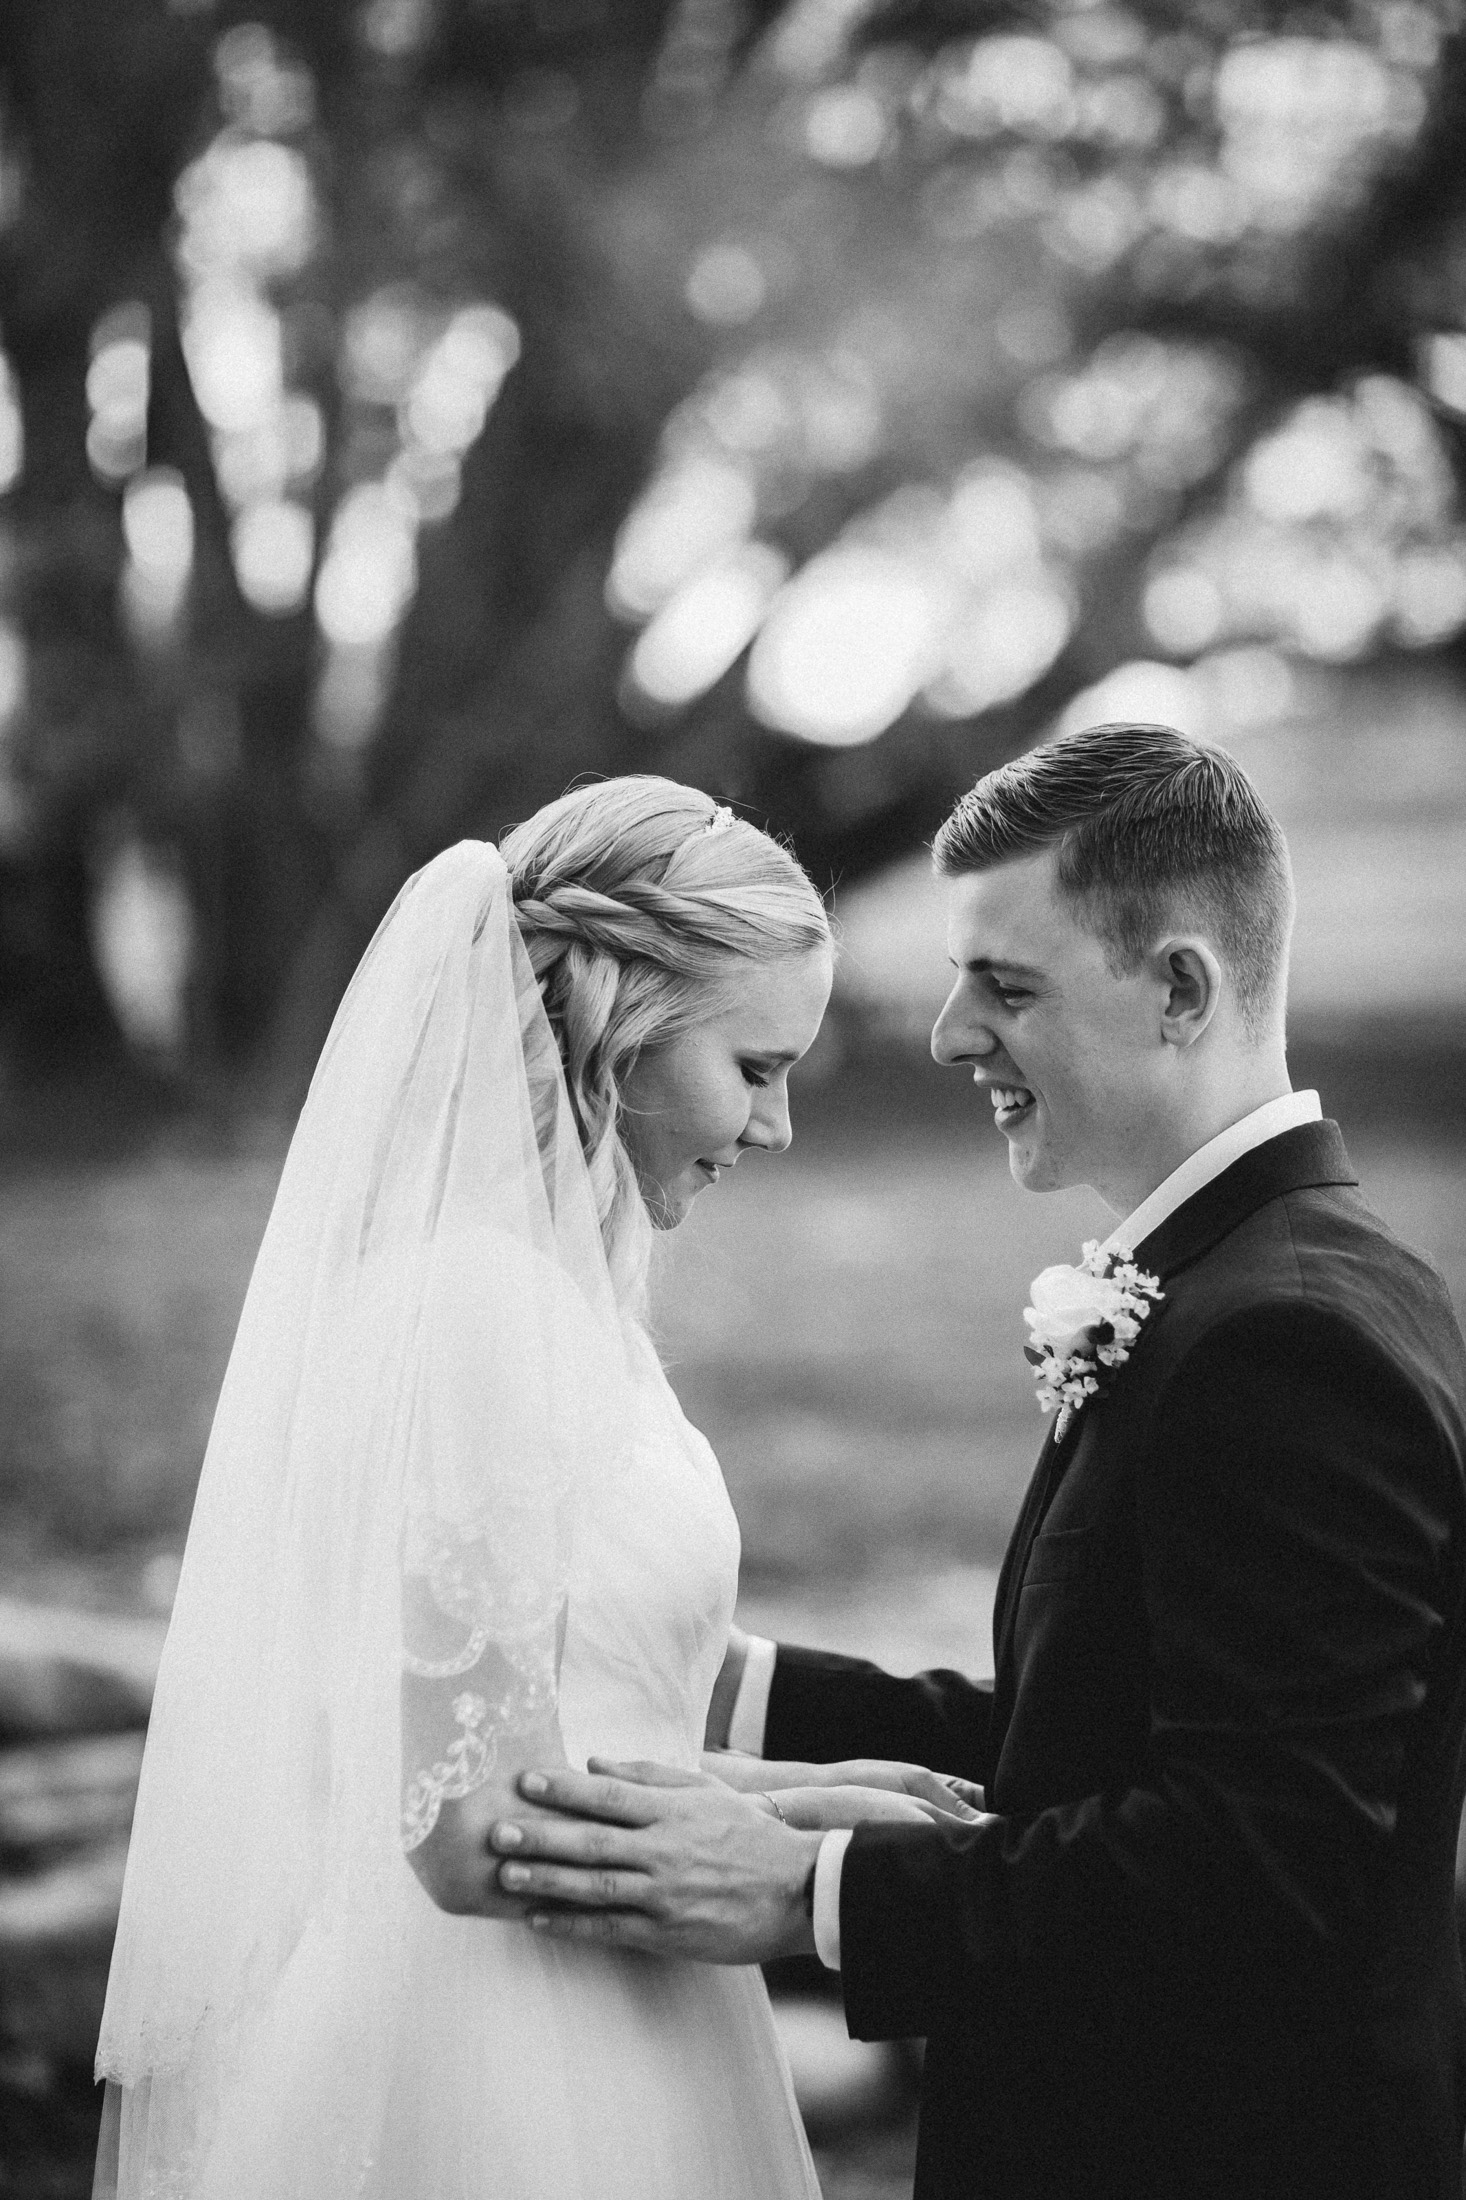 Black and white photograph of bride and groom embracing underneath Willow trees at Willow Vale Events.